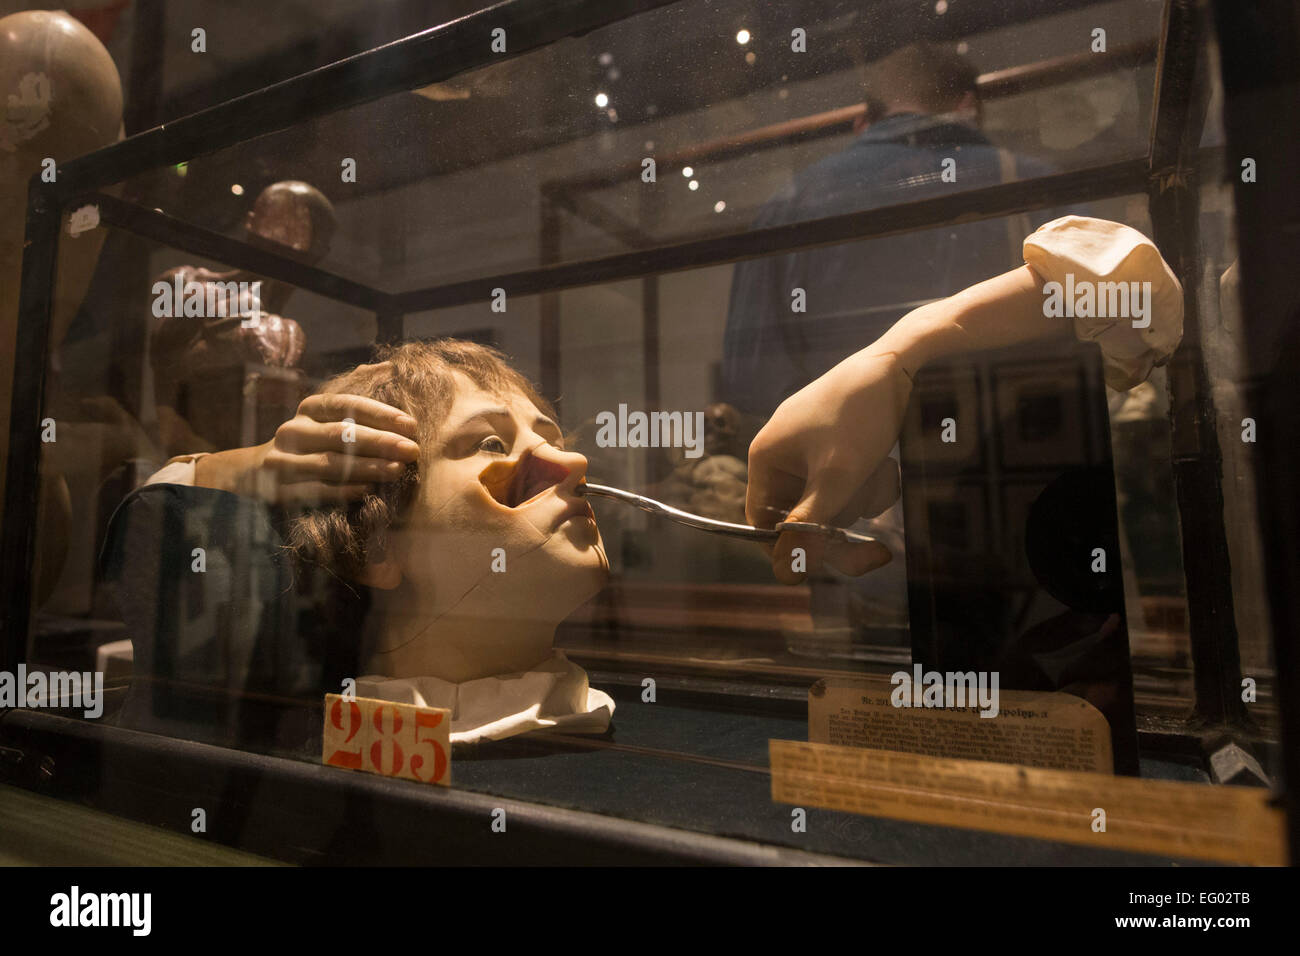 London, UK. 11 February 2015. Pictured: medical models collected by Damien Hirst. The exhibition 'Magnificent - Stock Image